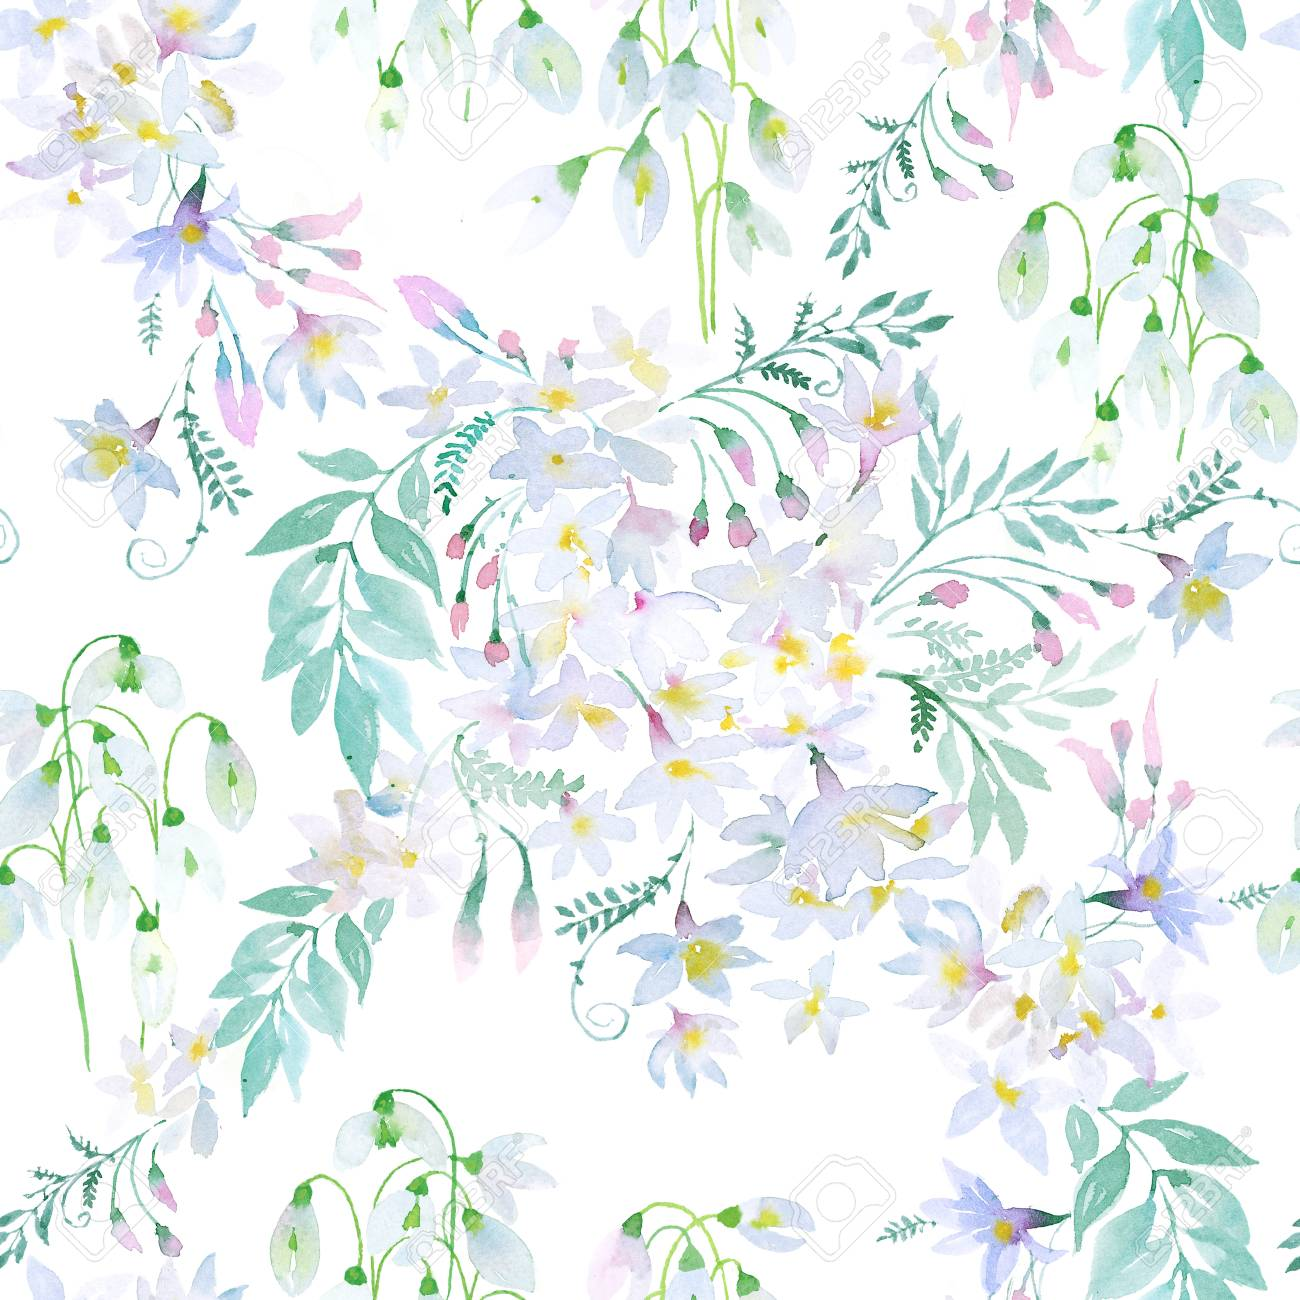 Watercolor Spring Flowers Botanical Pattern And Seamless Background